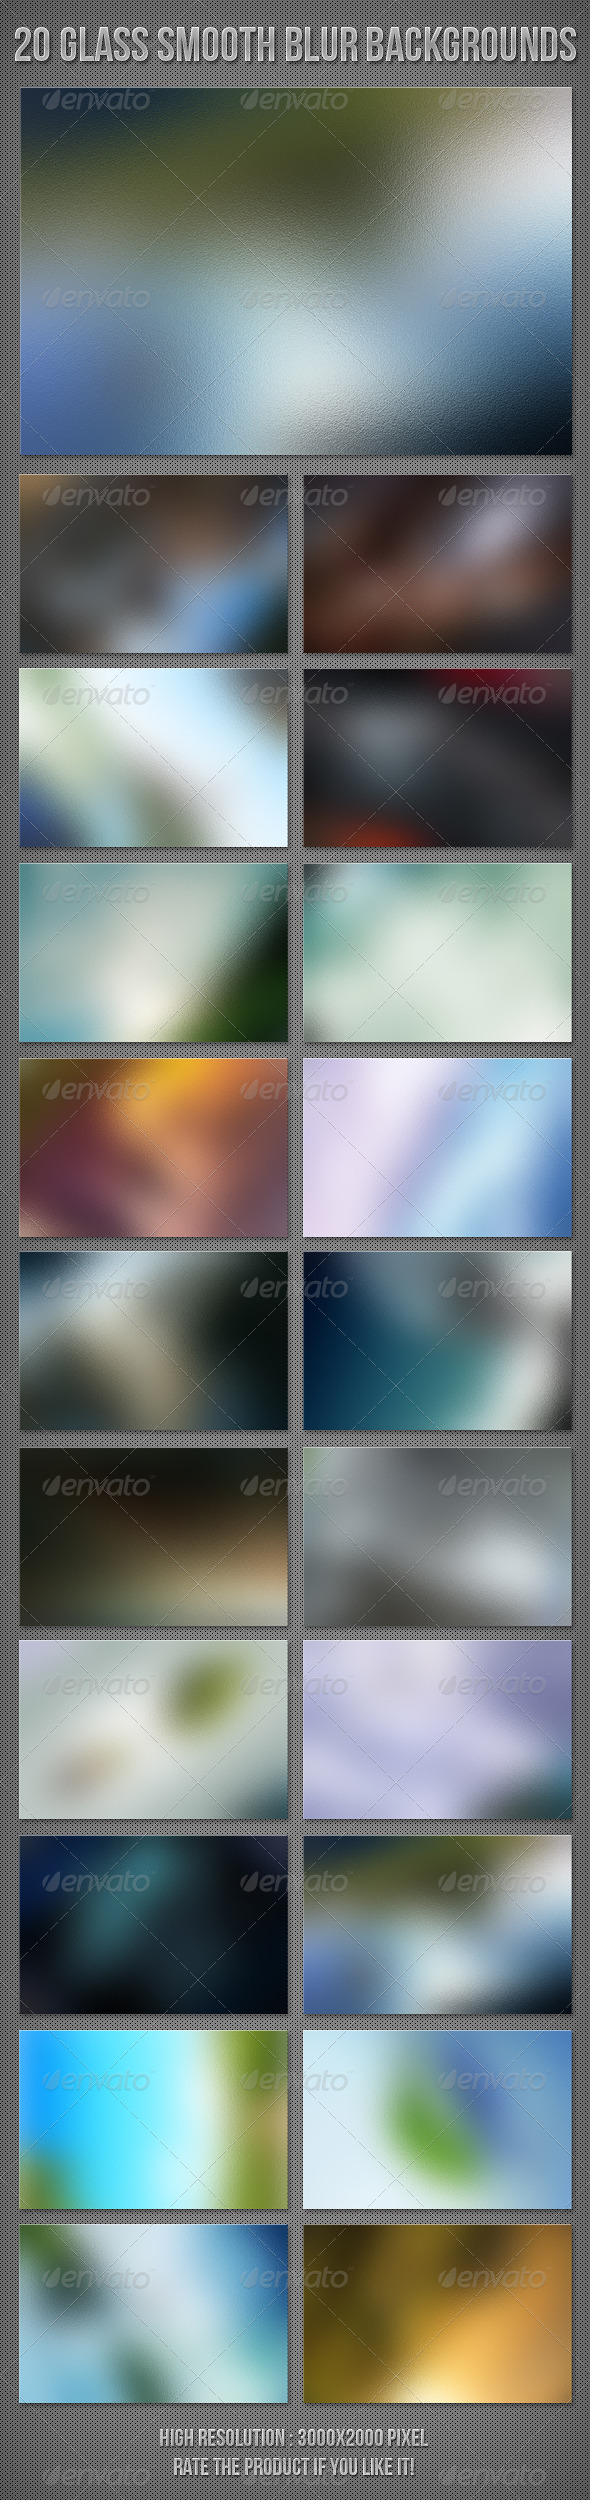 20 Glass Blur Backgrounds - Abstract Backgrounds